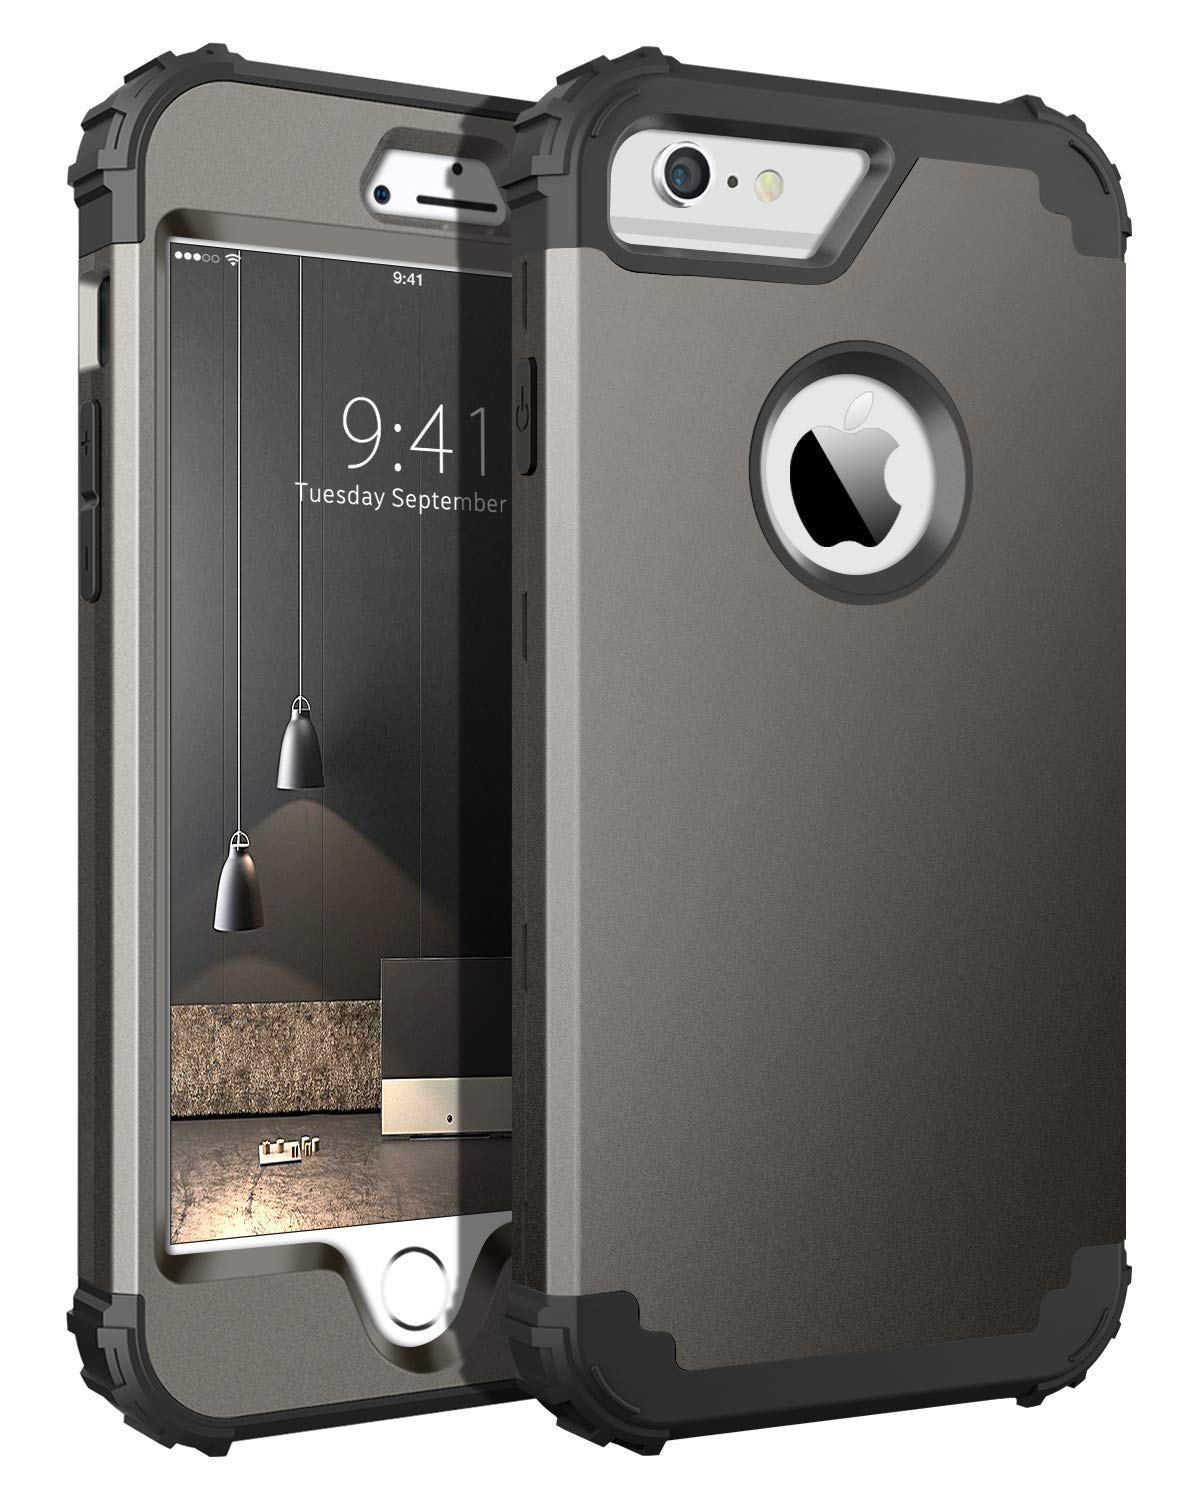 BENTOBEN Funda iPhone 6s Plus,Funda iPhone 6 Plus, 3 en 1 Carcasa Combinada PC Híbrido y Silicona TPU Resistente PC Bumper Antigolpes Protectora Cubierta Fundas para iPhone 6 plus/6s Plus 5.5-Bronce: Amazon.es: